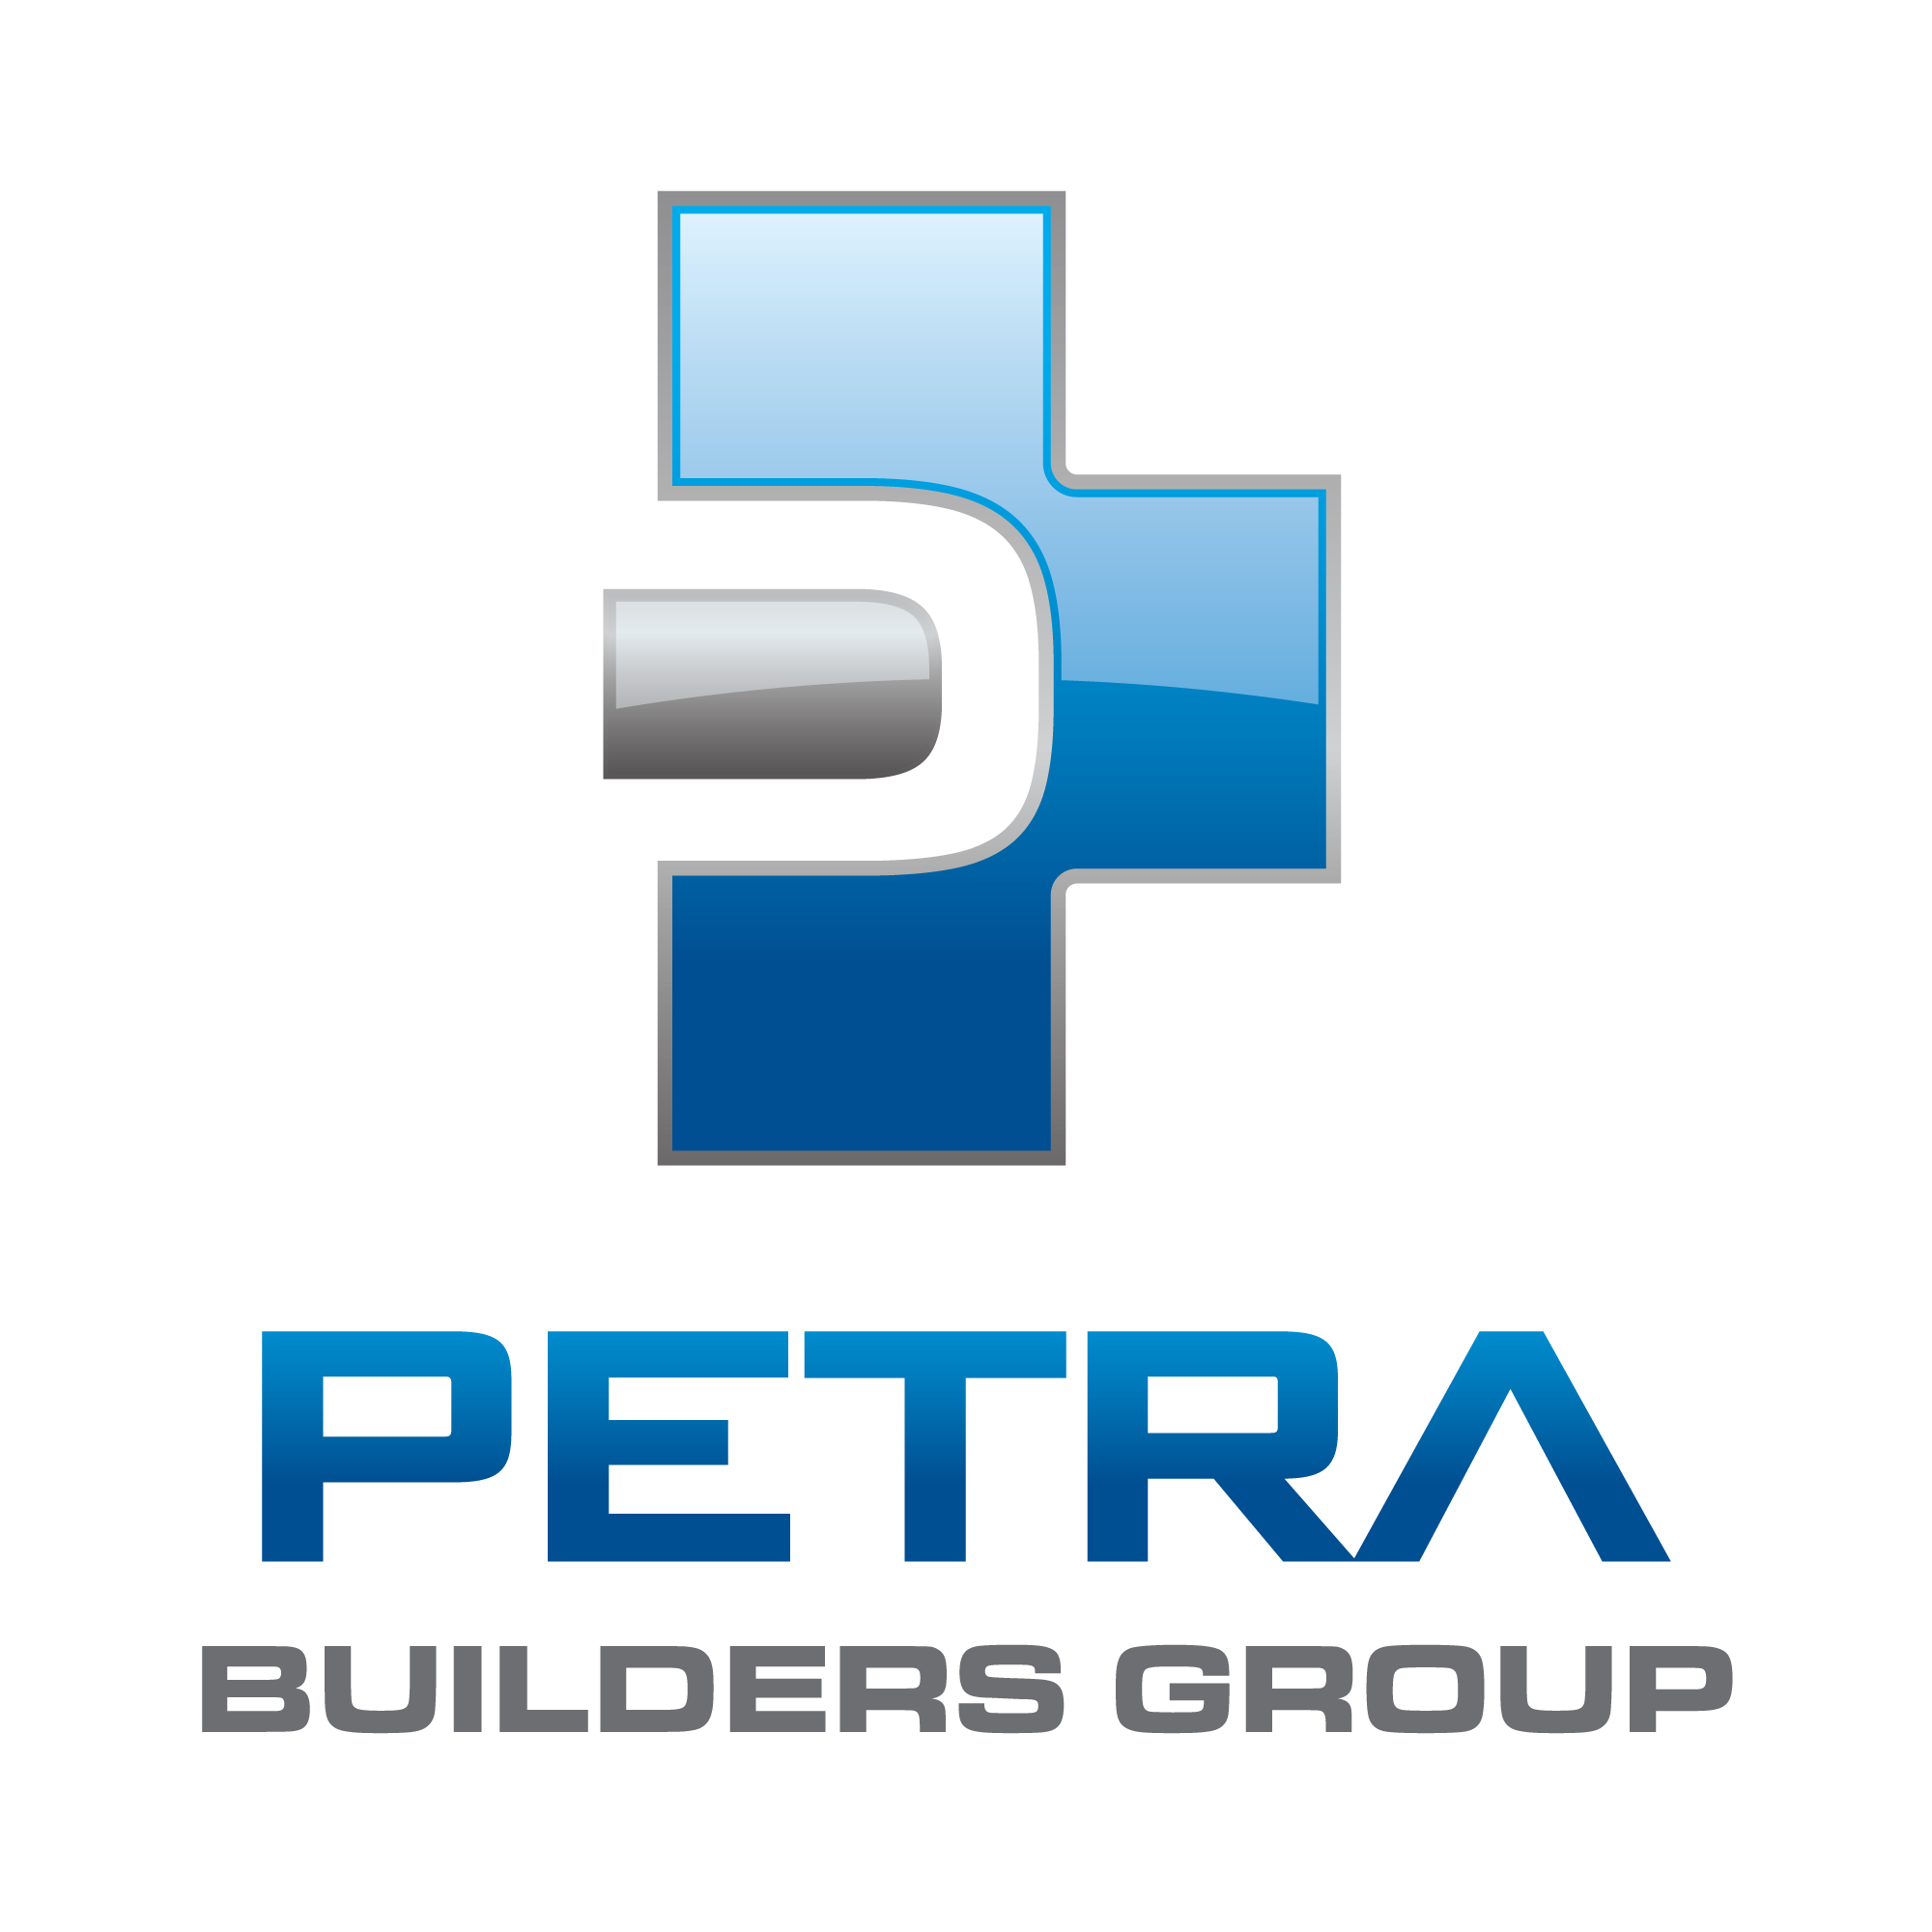 Petra Builders Group